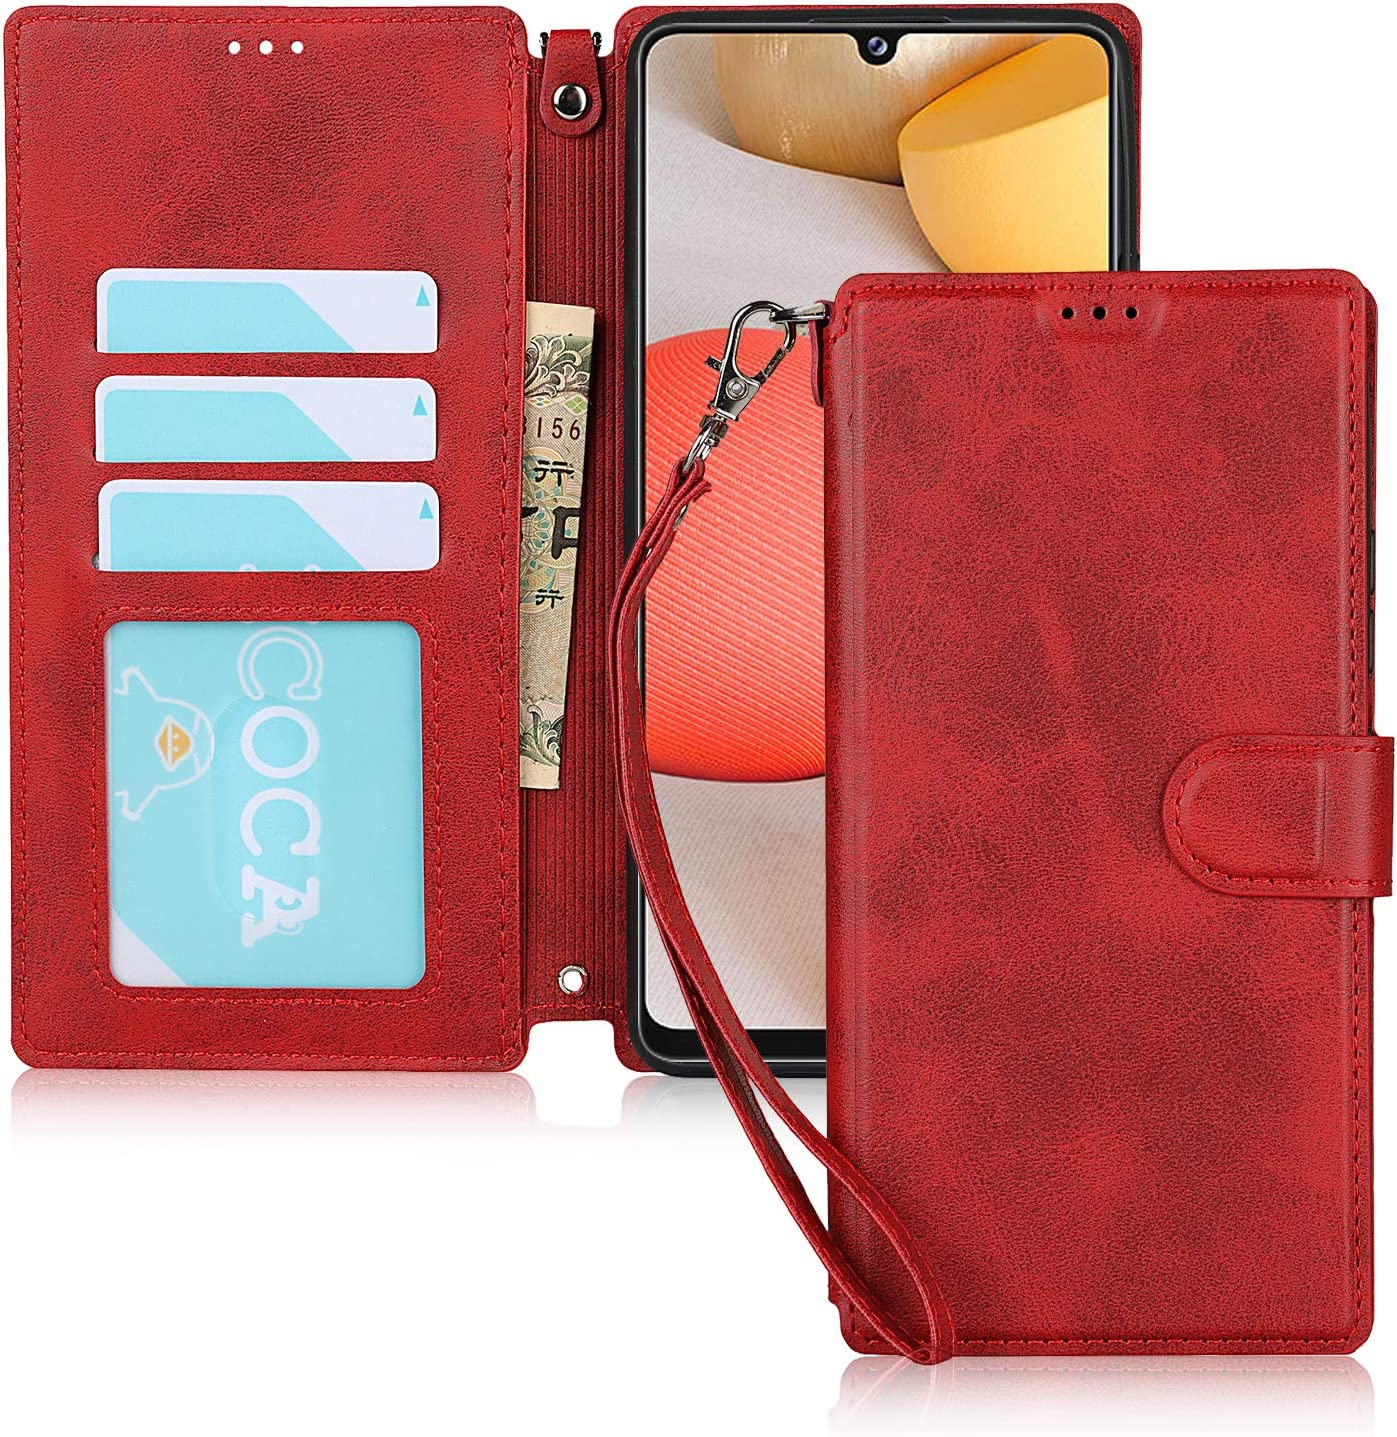 JWS-C Samsung Galaxy A42 5G Case Wallet Leather with Card Holder Shockproof Protective Flip Case Men for Samsung Galaxy A42 5G-Red